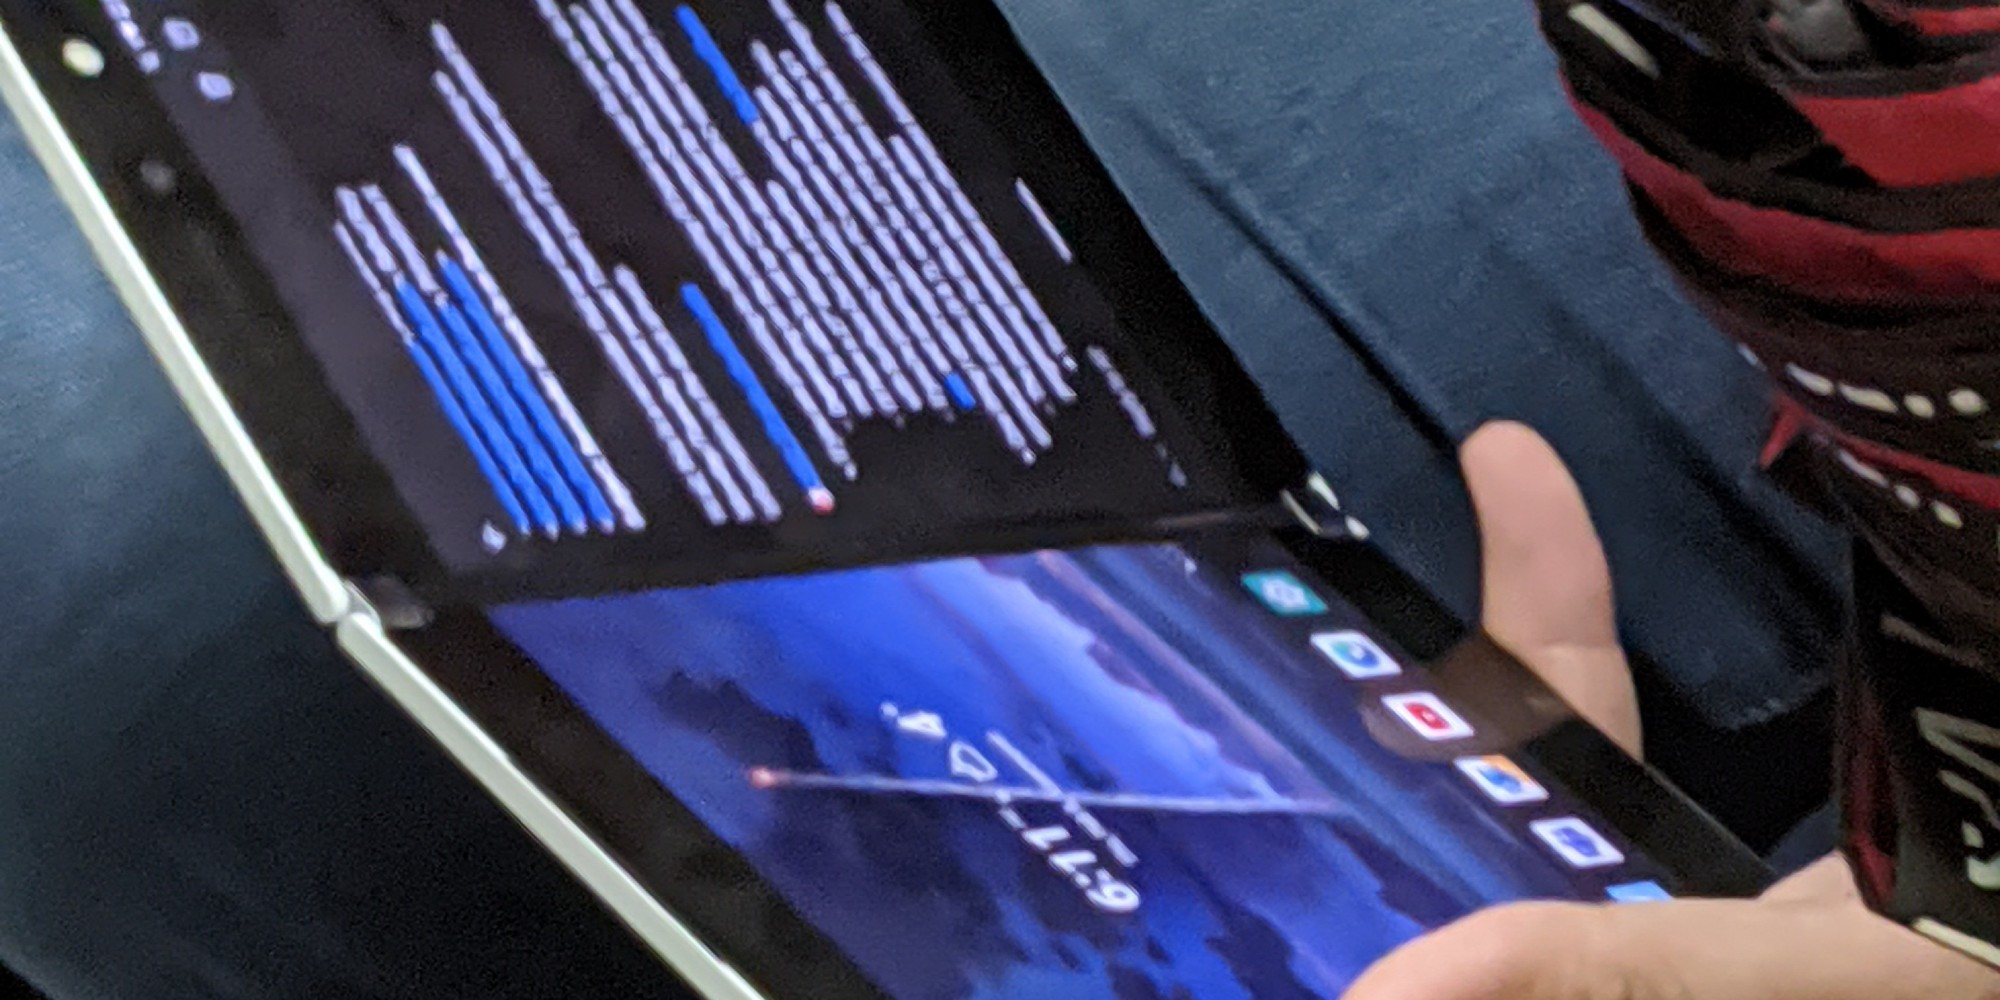 Microsoft Surface Duo spotted in the wild with apparent front-facing flash - 9to5Google